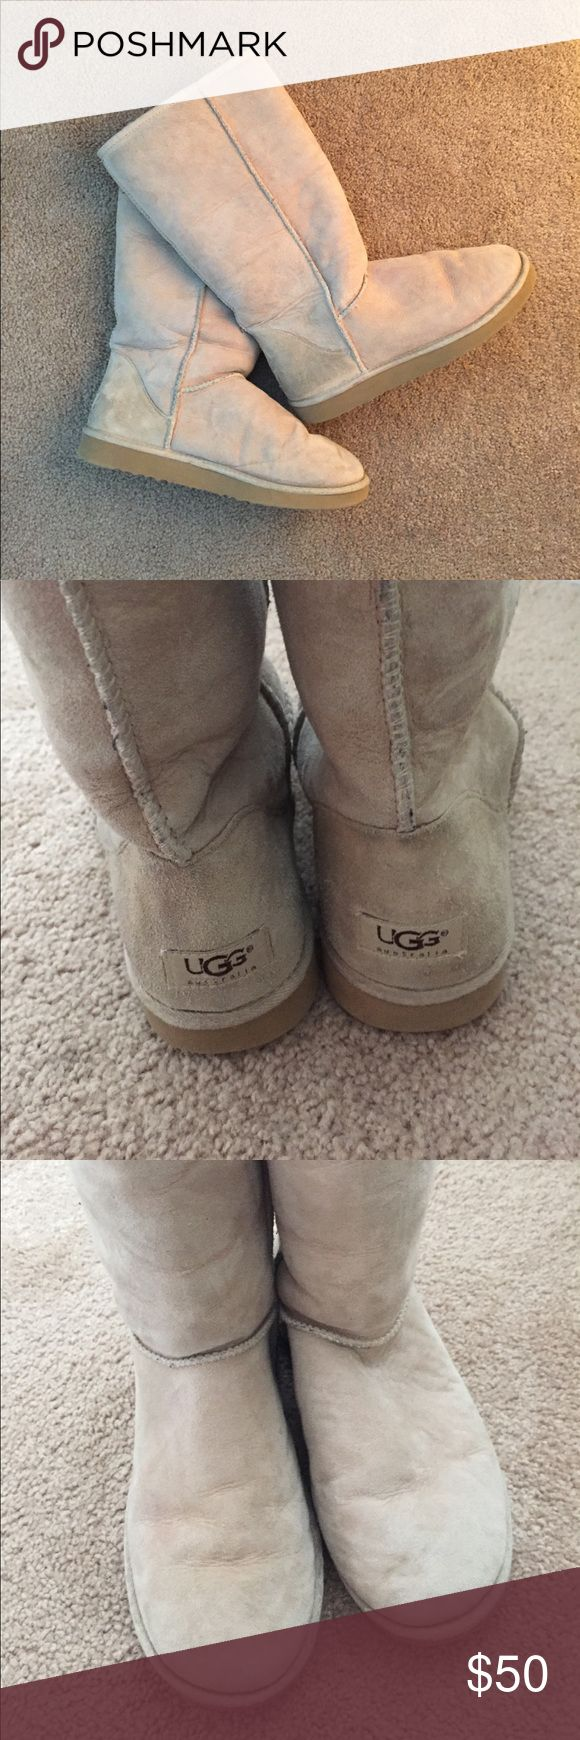 Original UGG Boots First generation of UGG boots, still in excellent condition! Inside fur is still fluffed (not packed at all), and very minor discoloration on outside. UGG Shoes Winter & Rain Boots